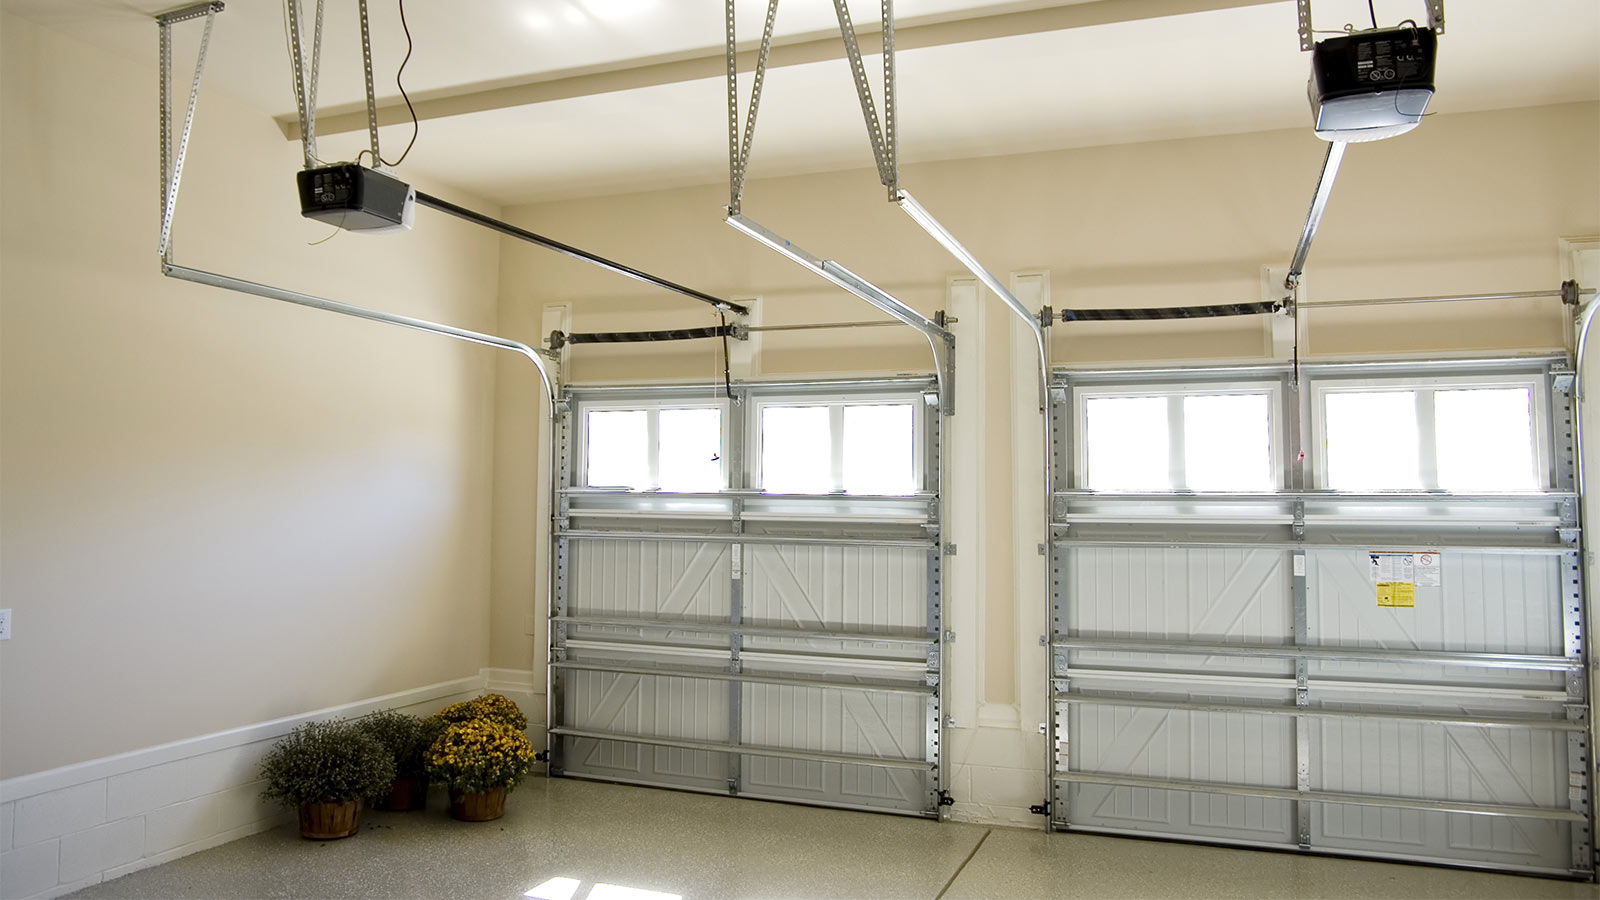 Sectional Garage Doors from Fire Shutters Braintree suppliers.